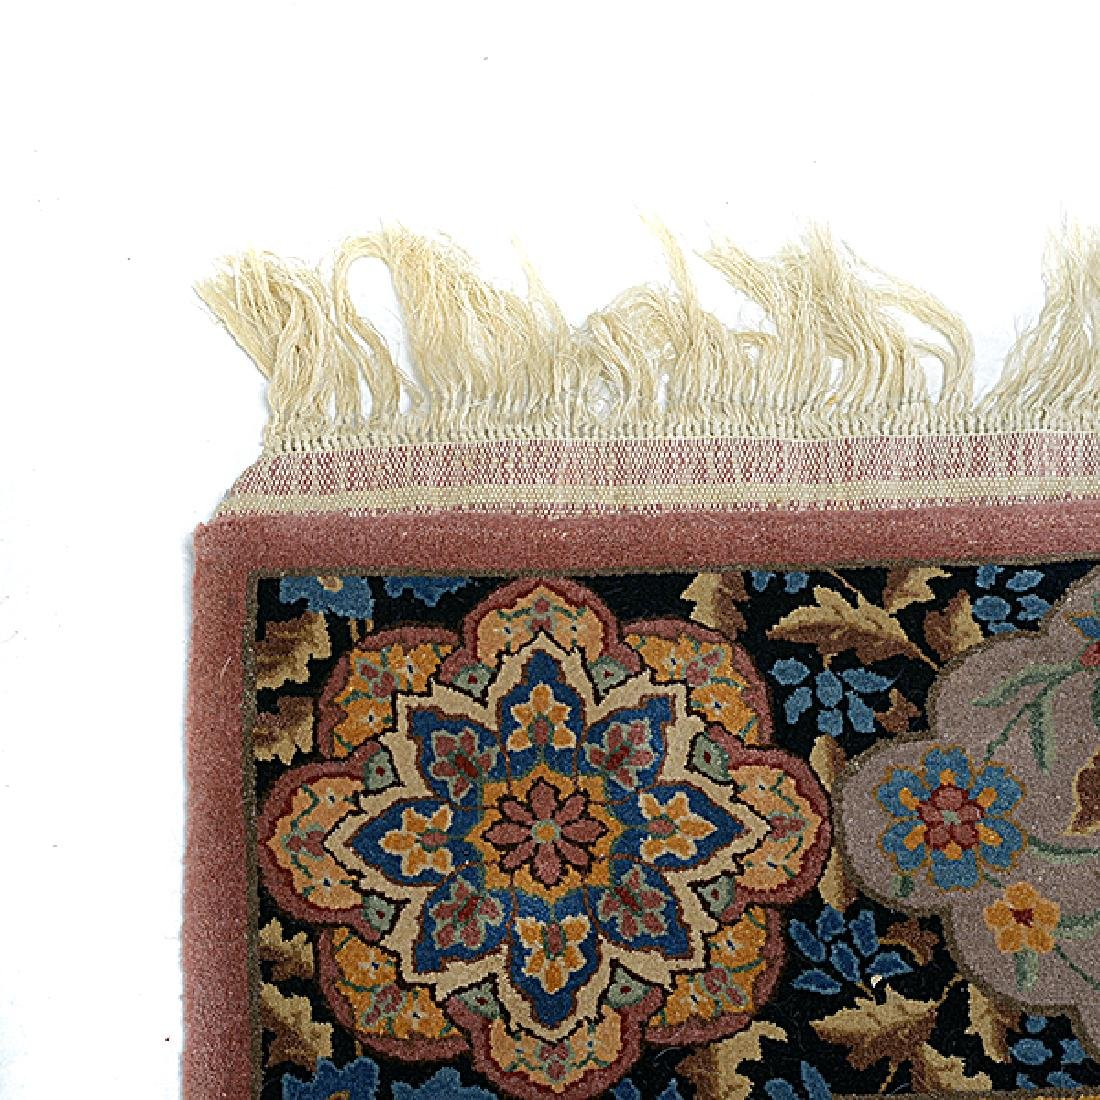 Islamic Figural Carpet Tapestry with Calligraphy: 5 - 6